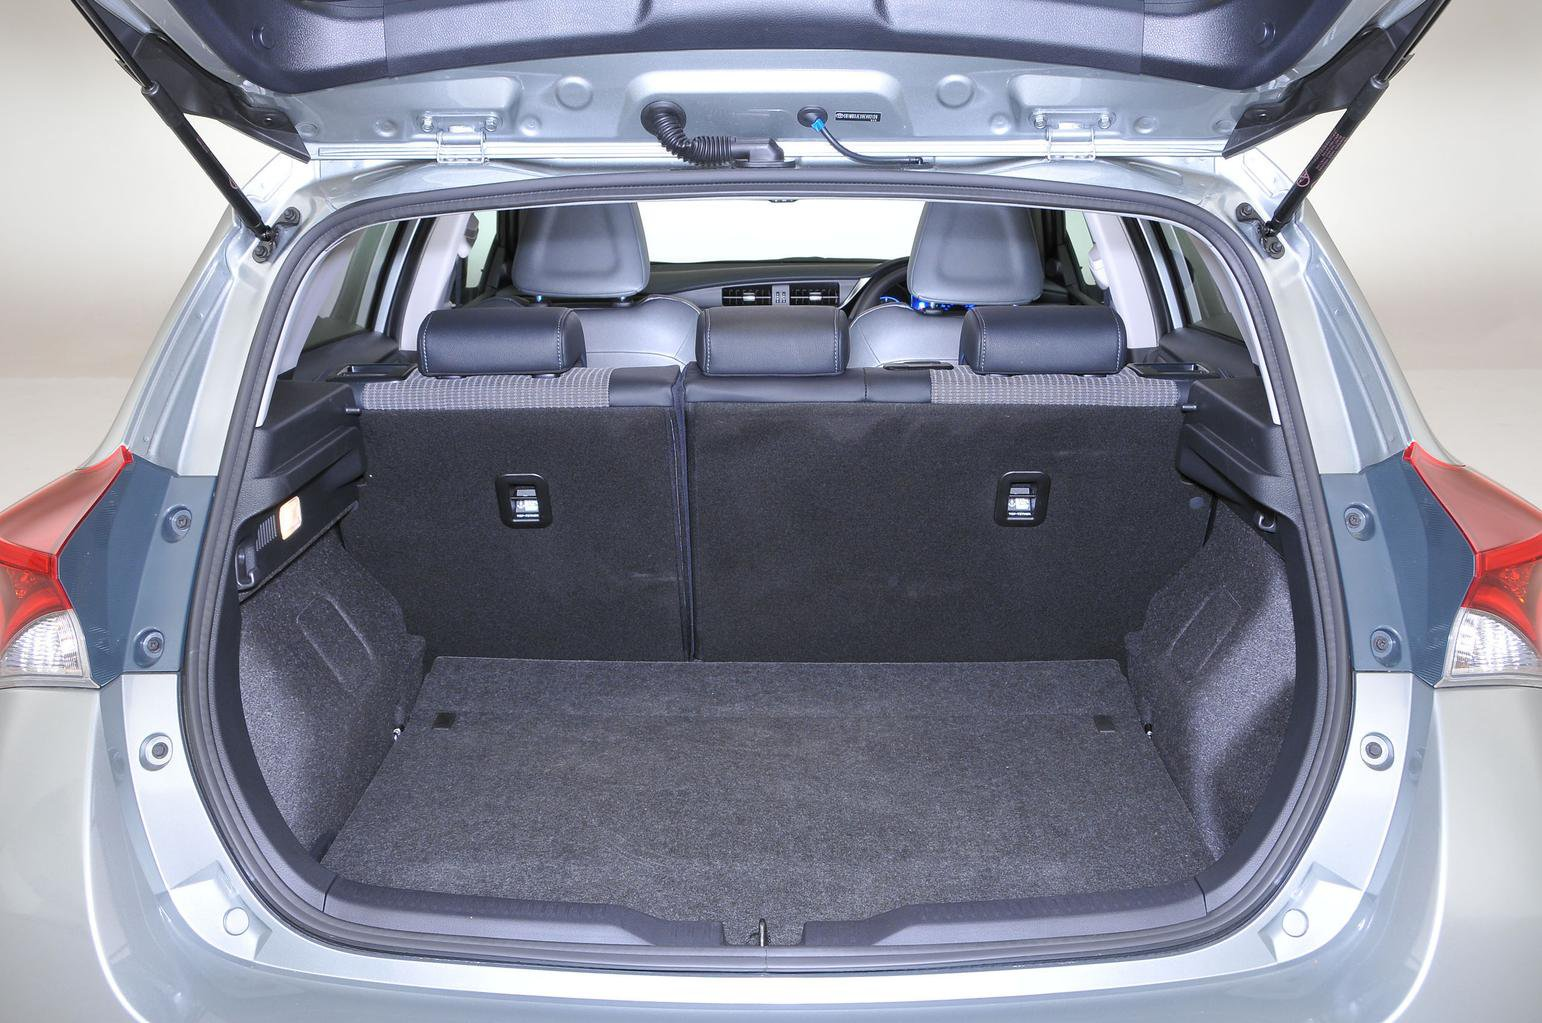 Toyota Auris Boot Space Size Seats What Car